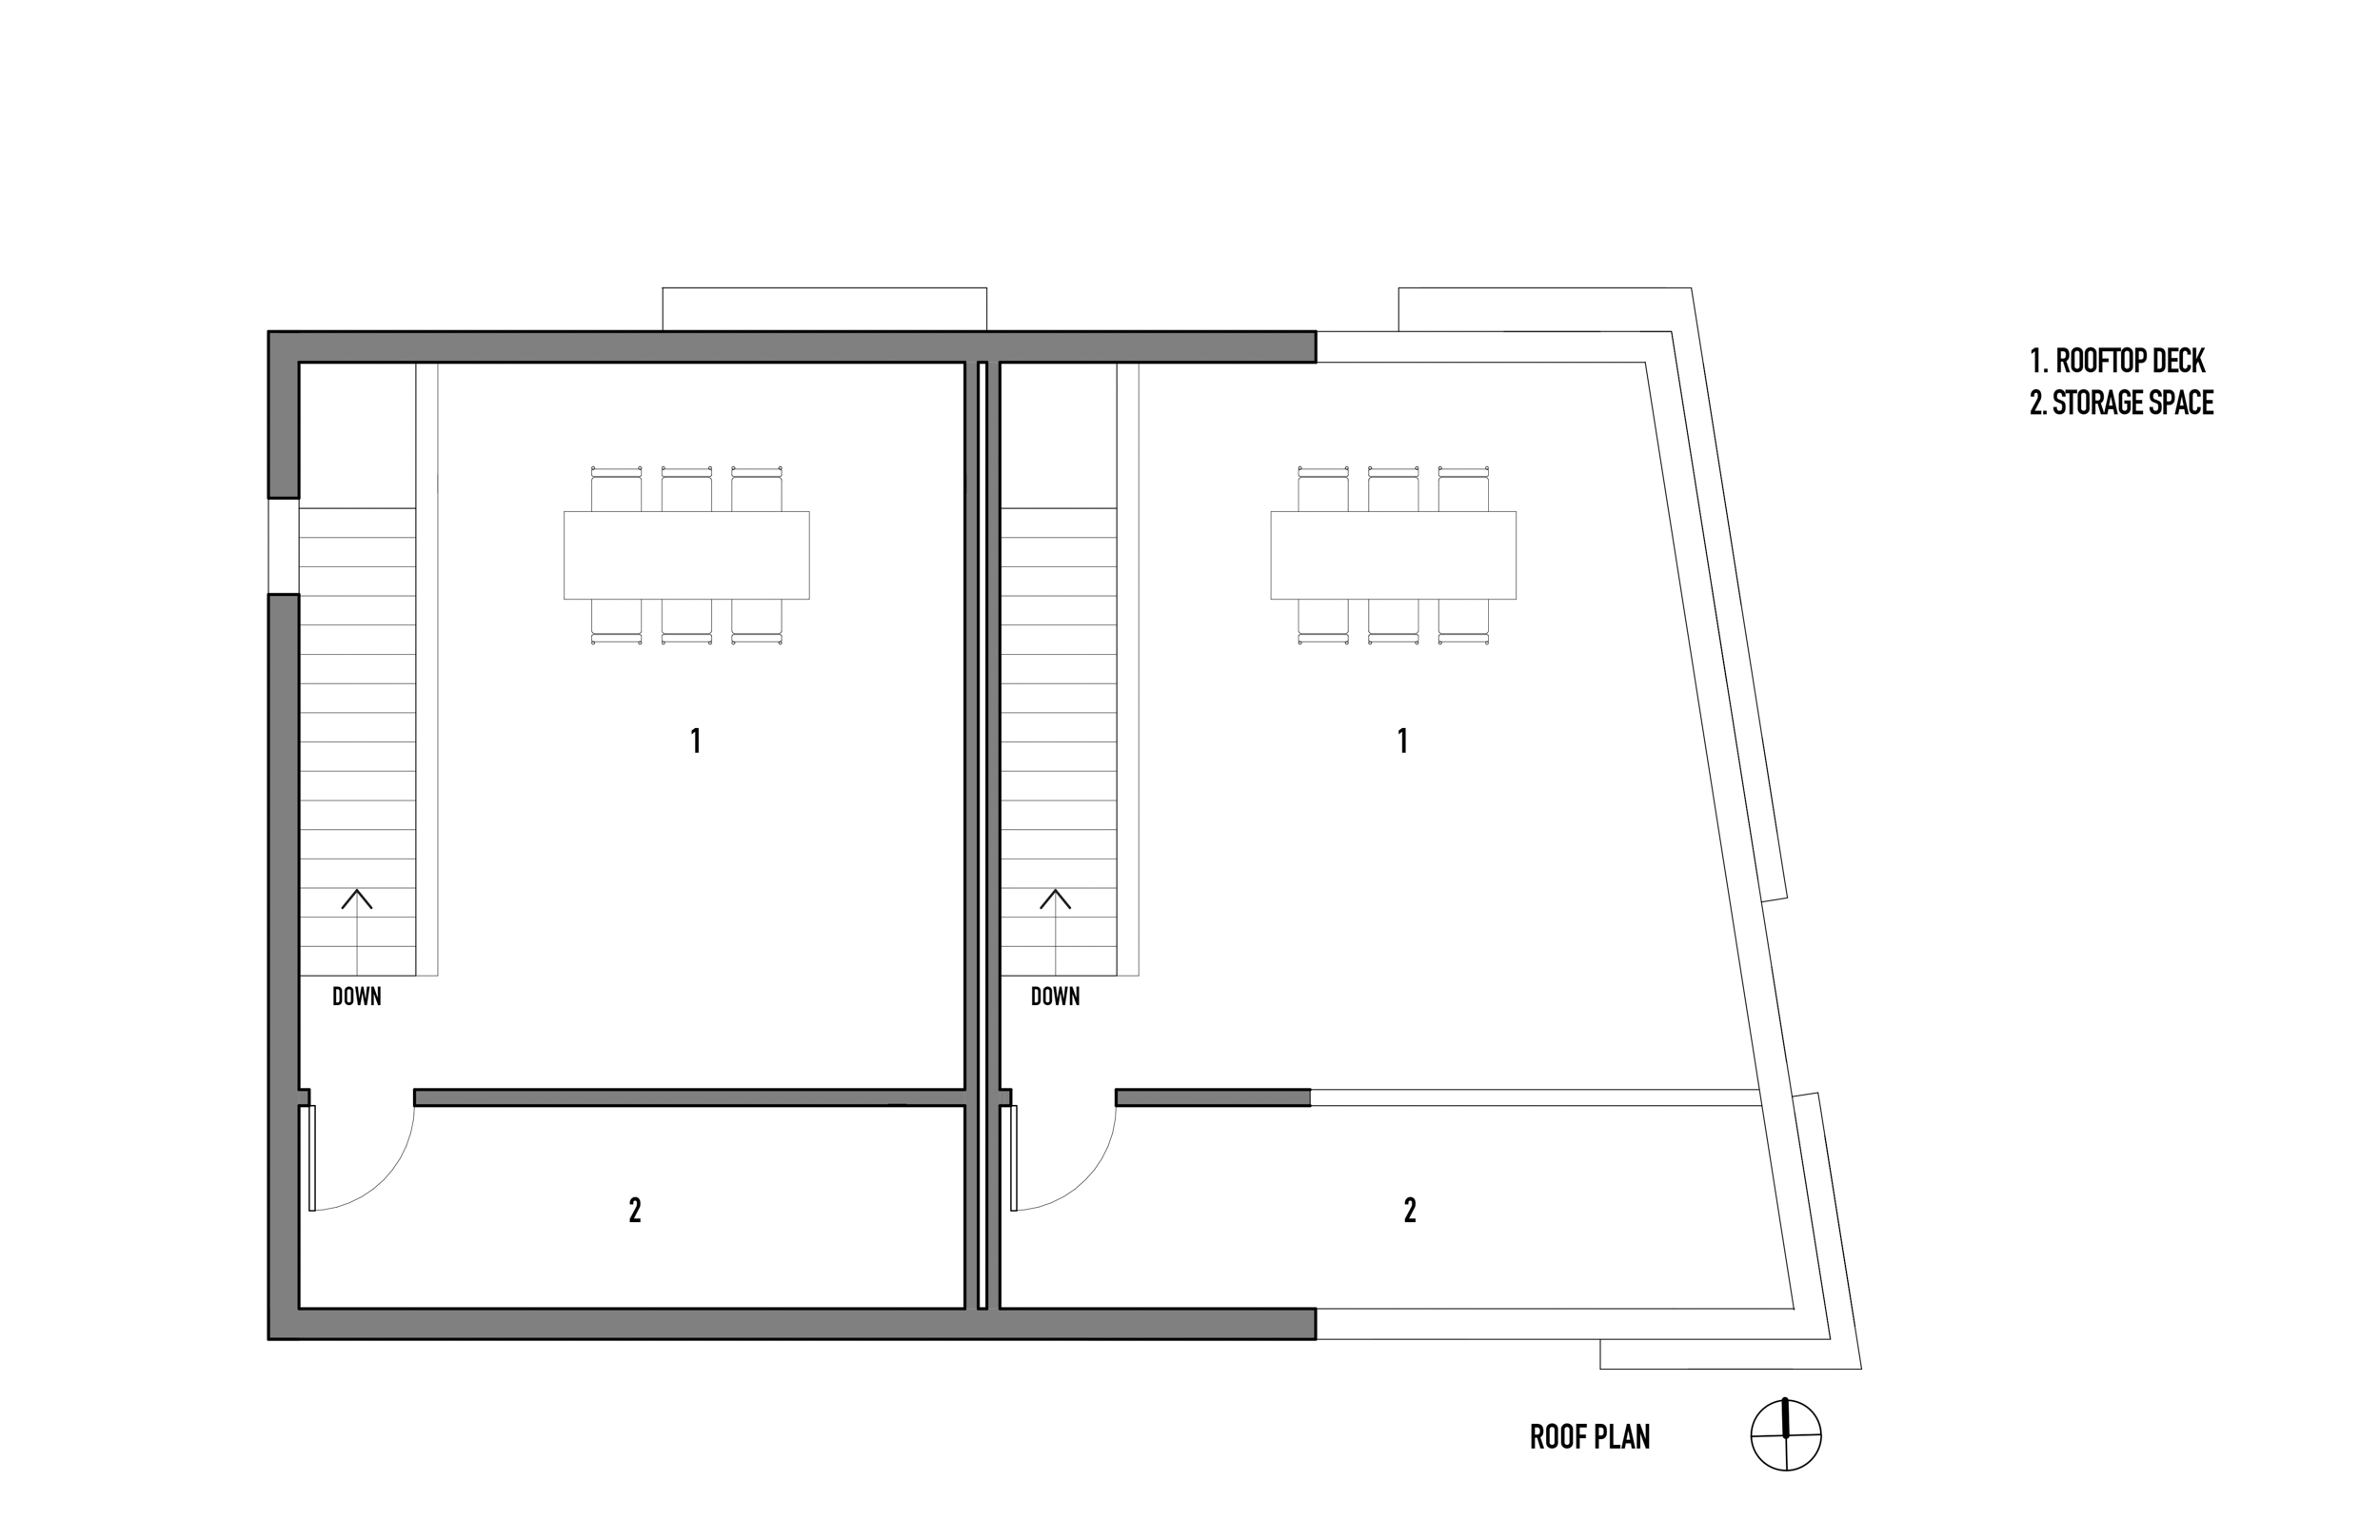 pairallel-wc-studio-architects-townhomes-Rooftop-Floor-Plan.jpg